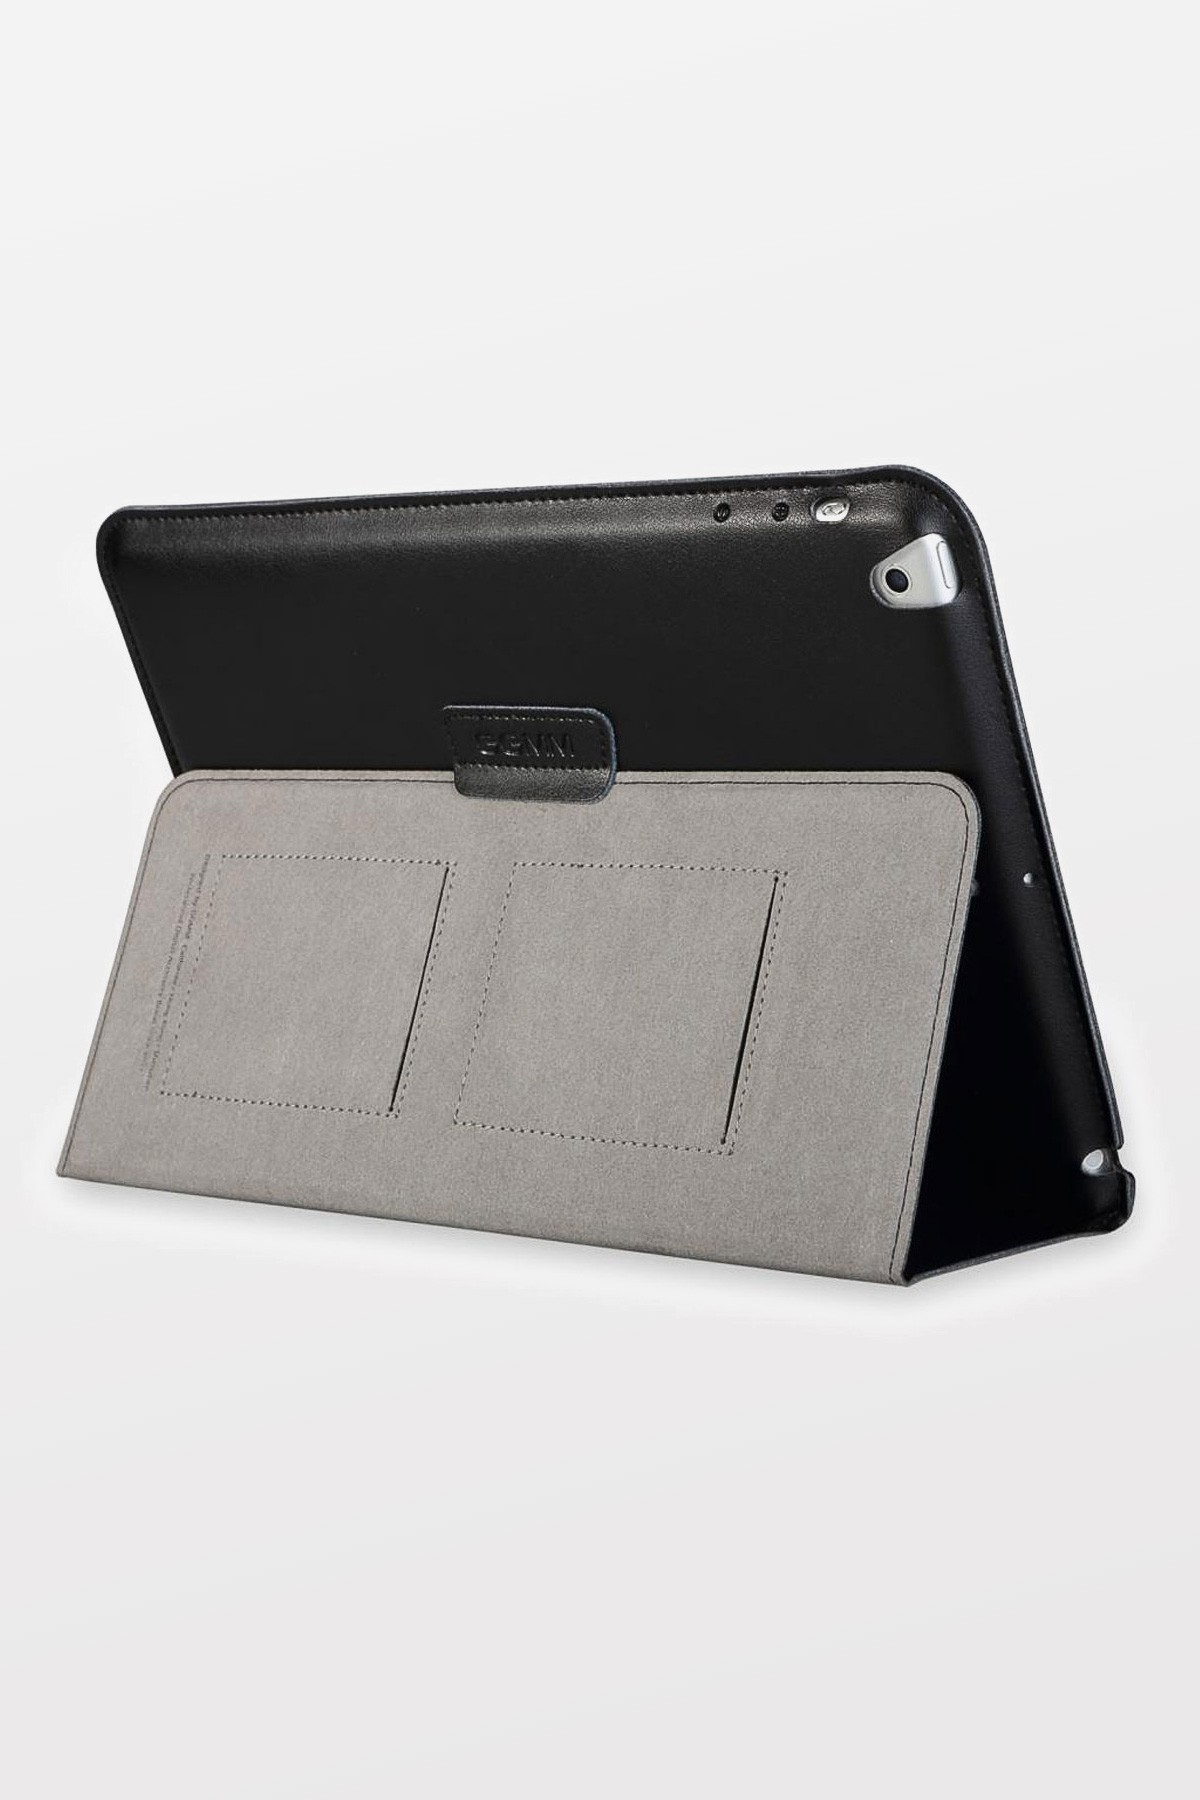 GGMM IntelliFolio-IA Case for iPad Air - Black